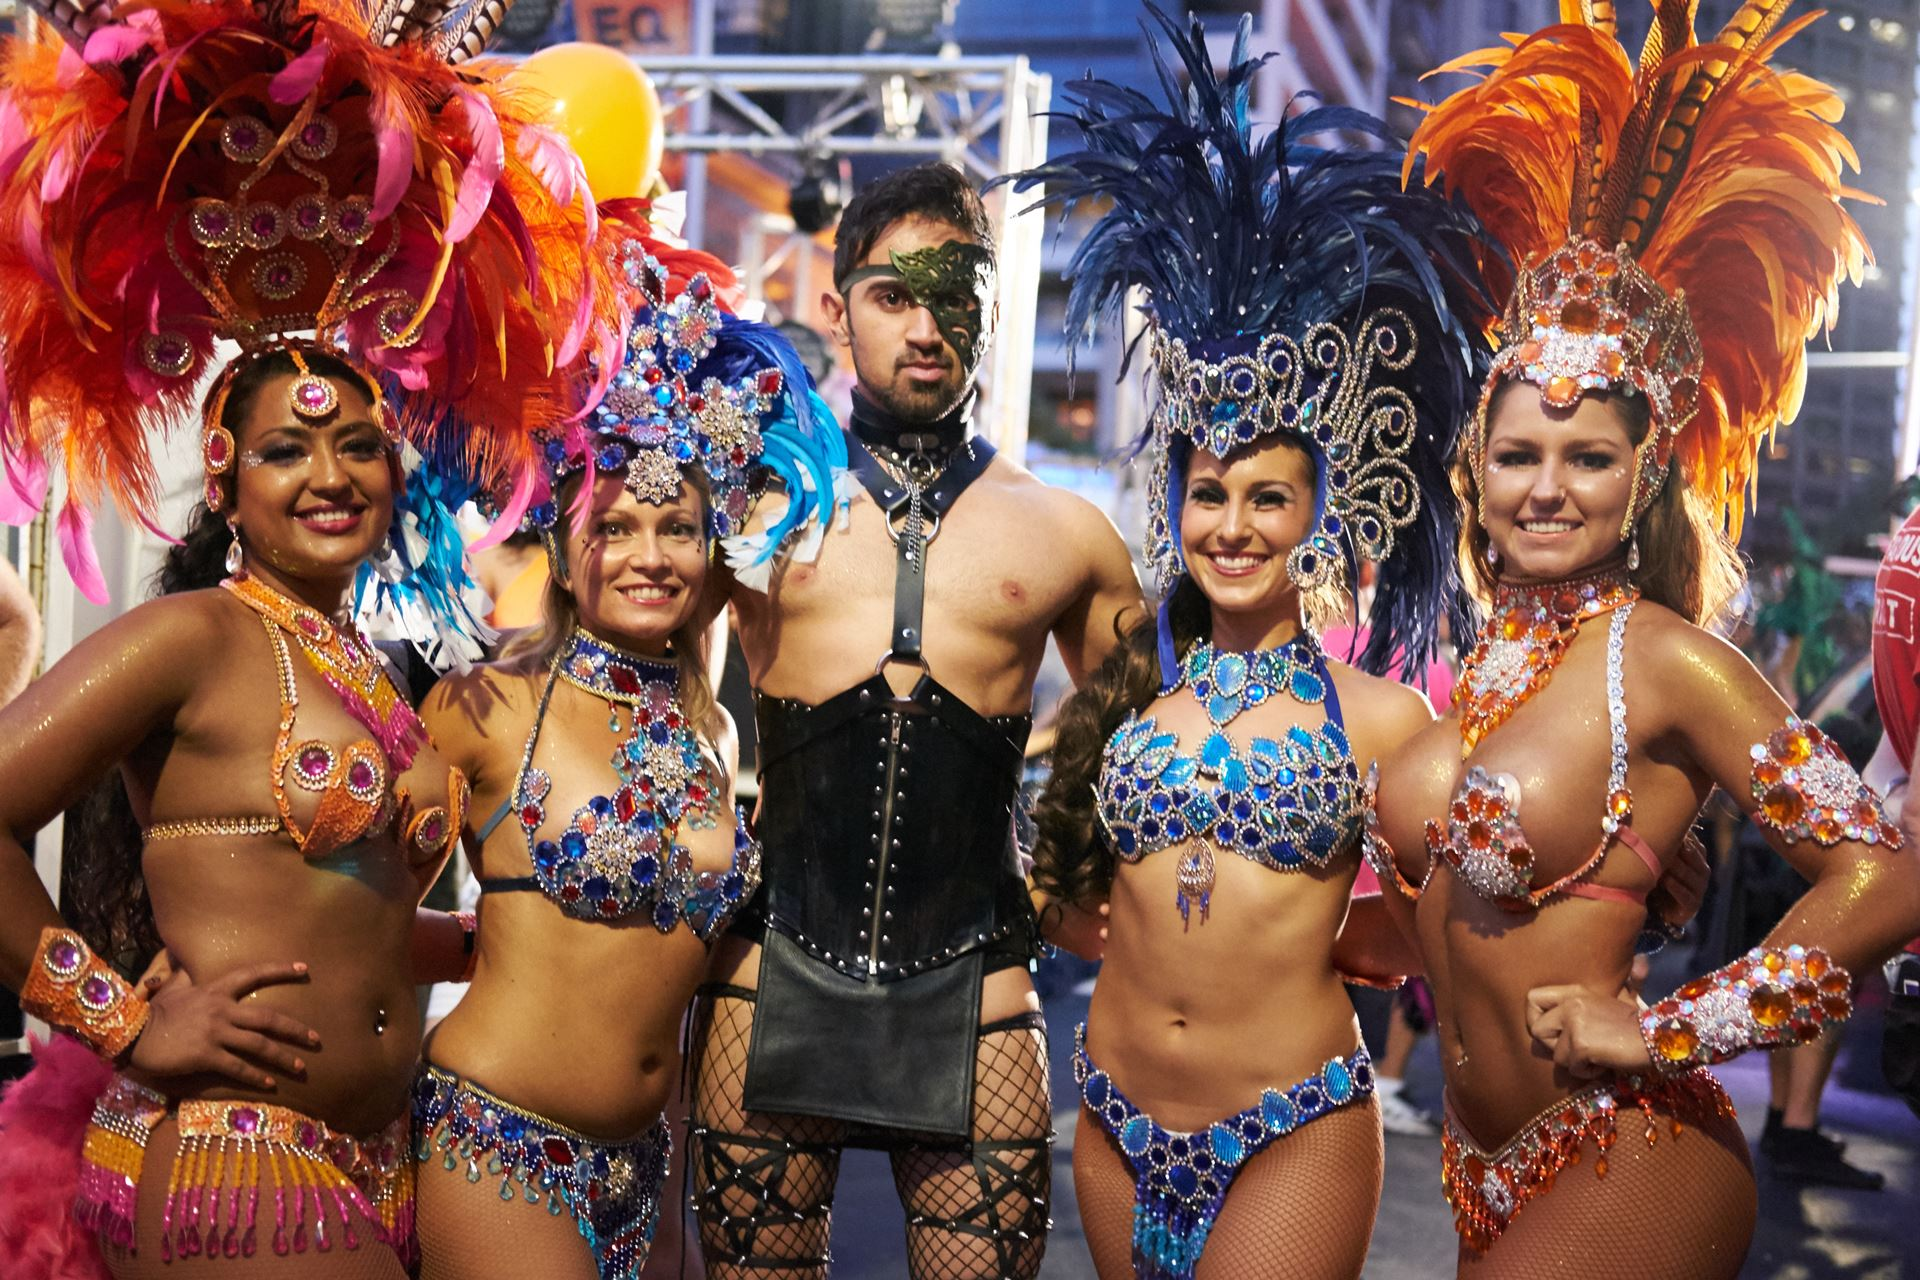 These Samba dancers are a fan favourite every year... I for the life of me have no idea why... lol